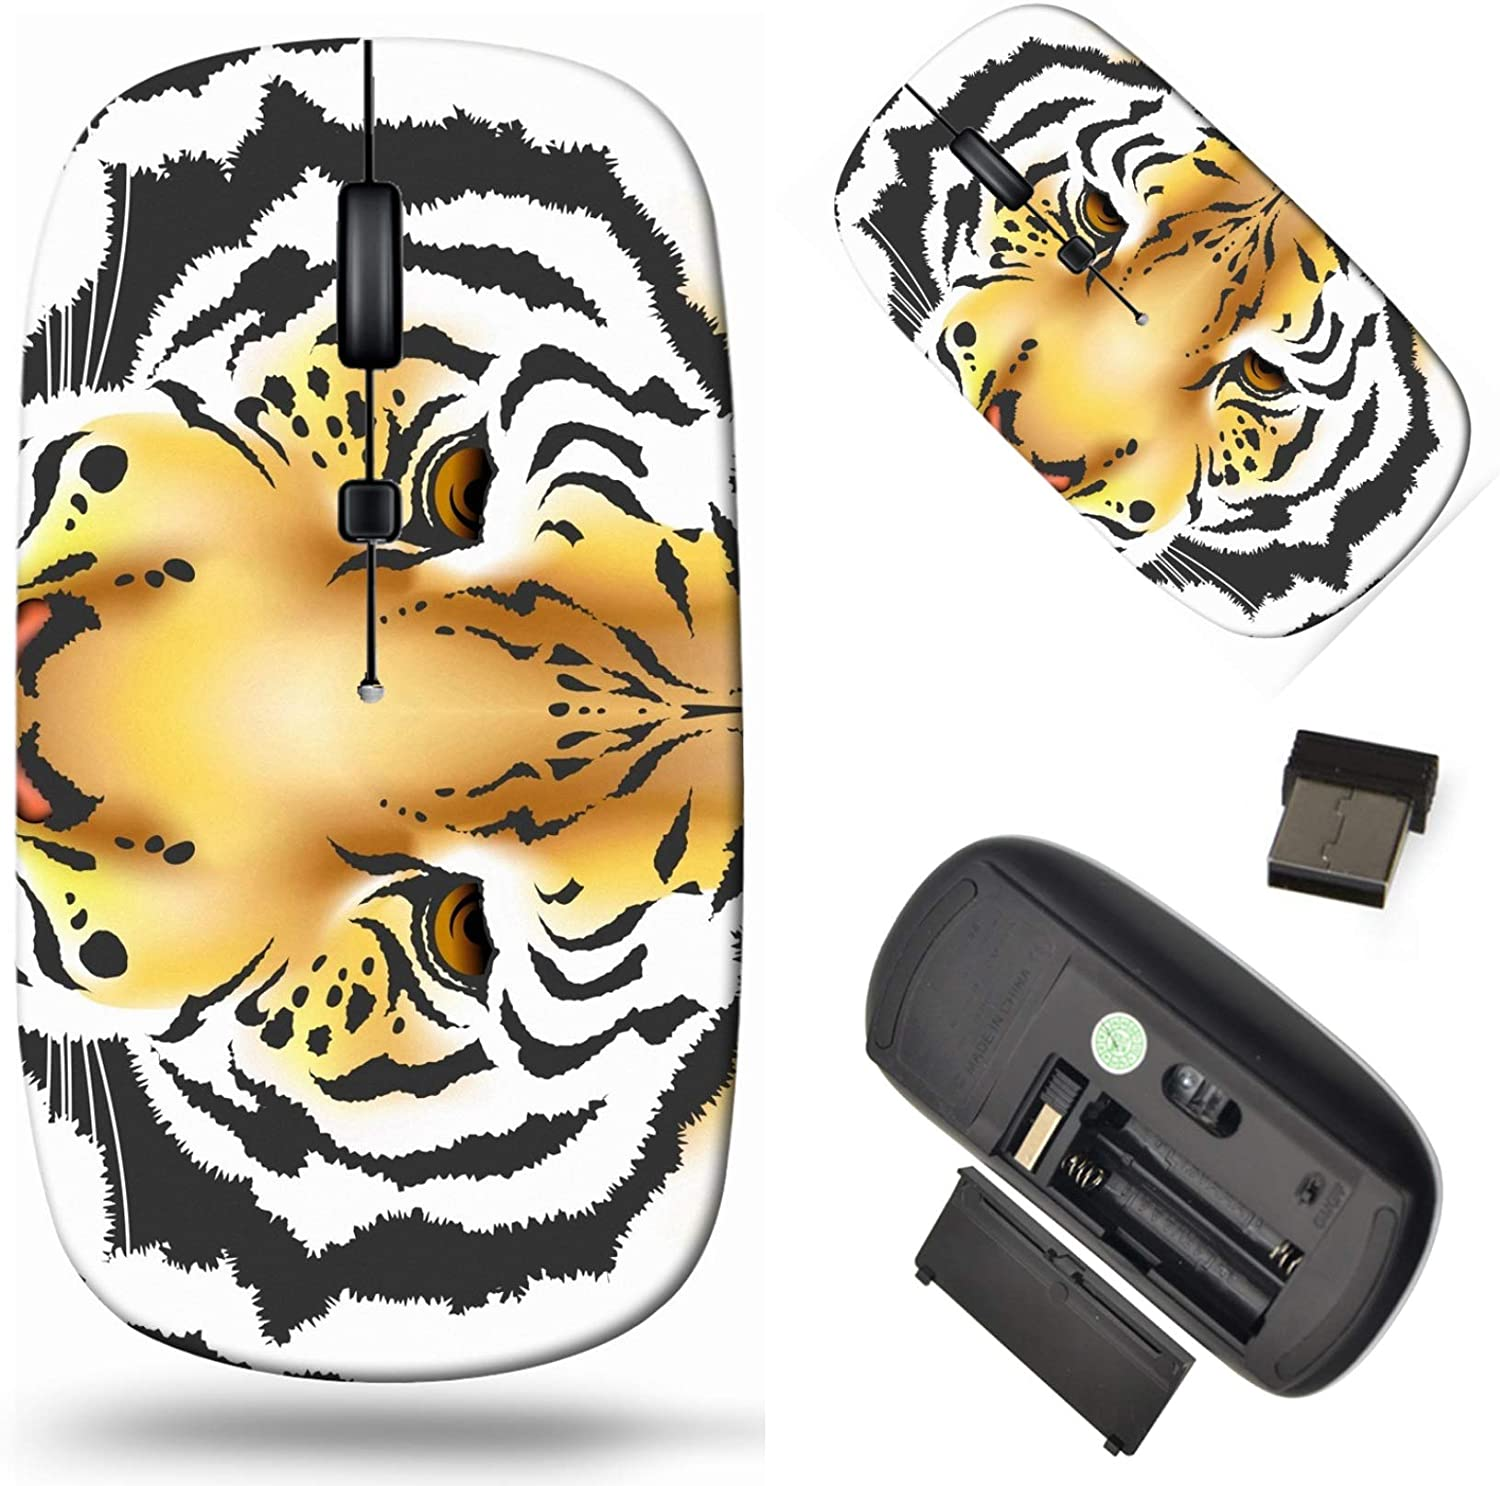 Wireless Computer Mouse OFFicial mail order 2.4G with Cor Special price for a limited time USB Receiver Laptop